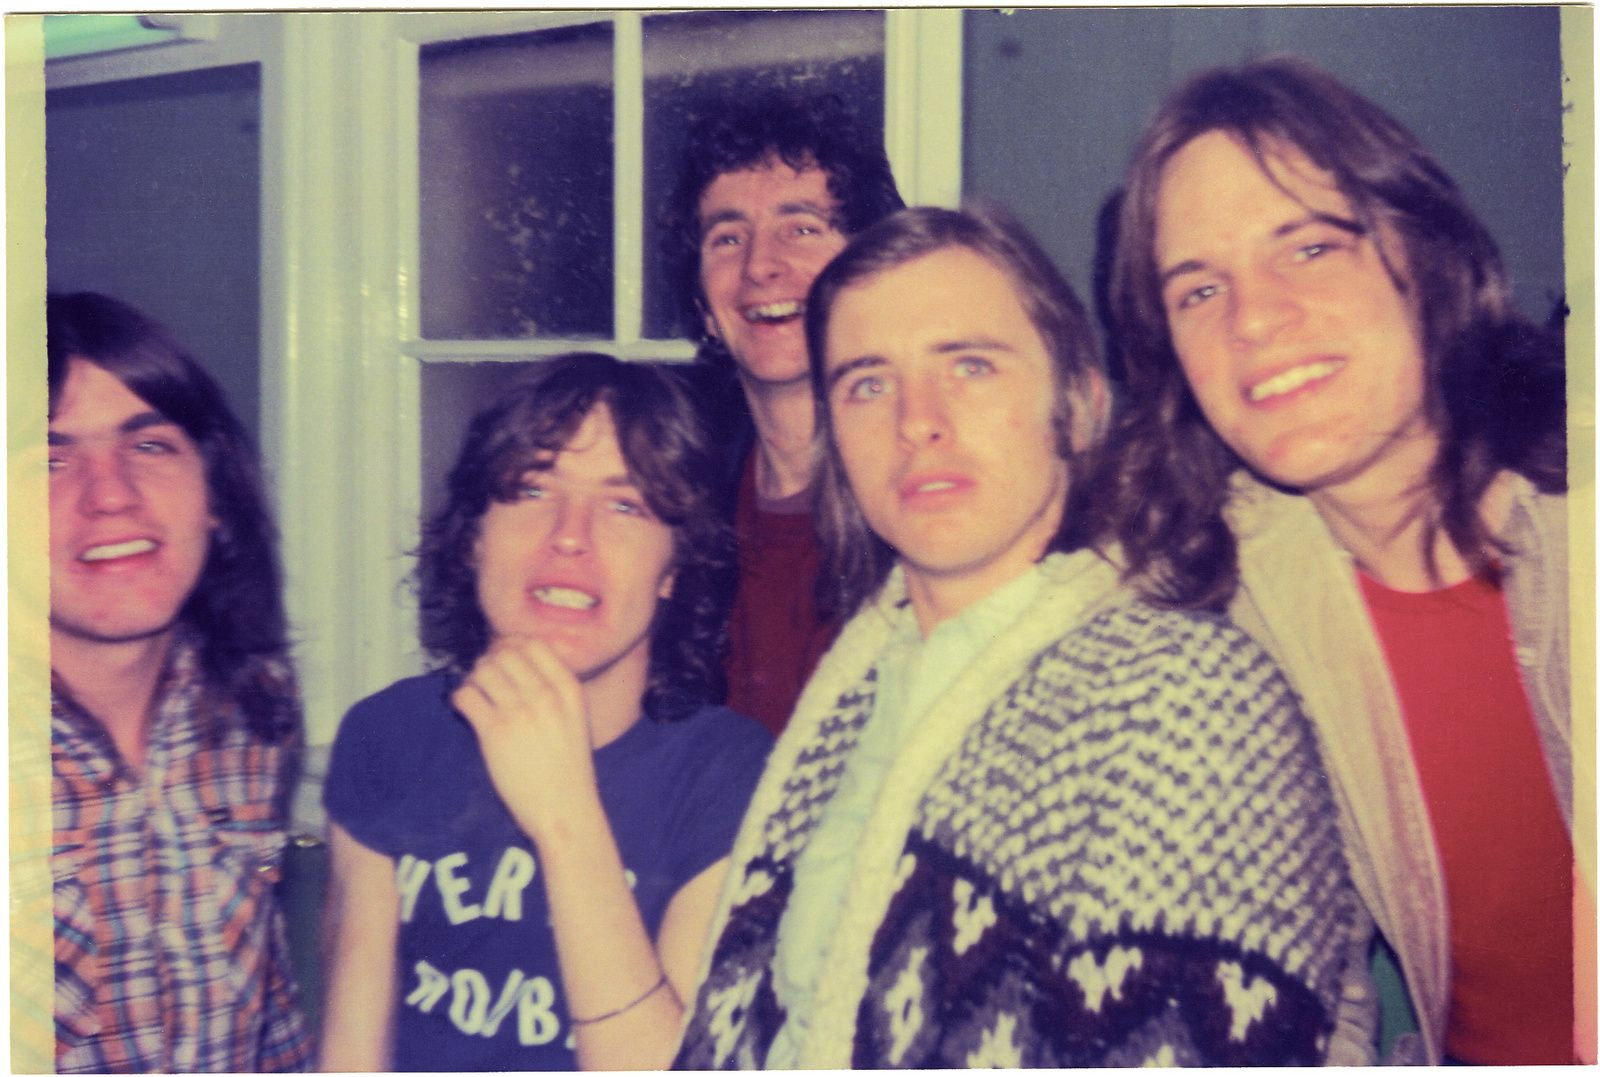 Bon Scott - Early band shot